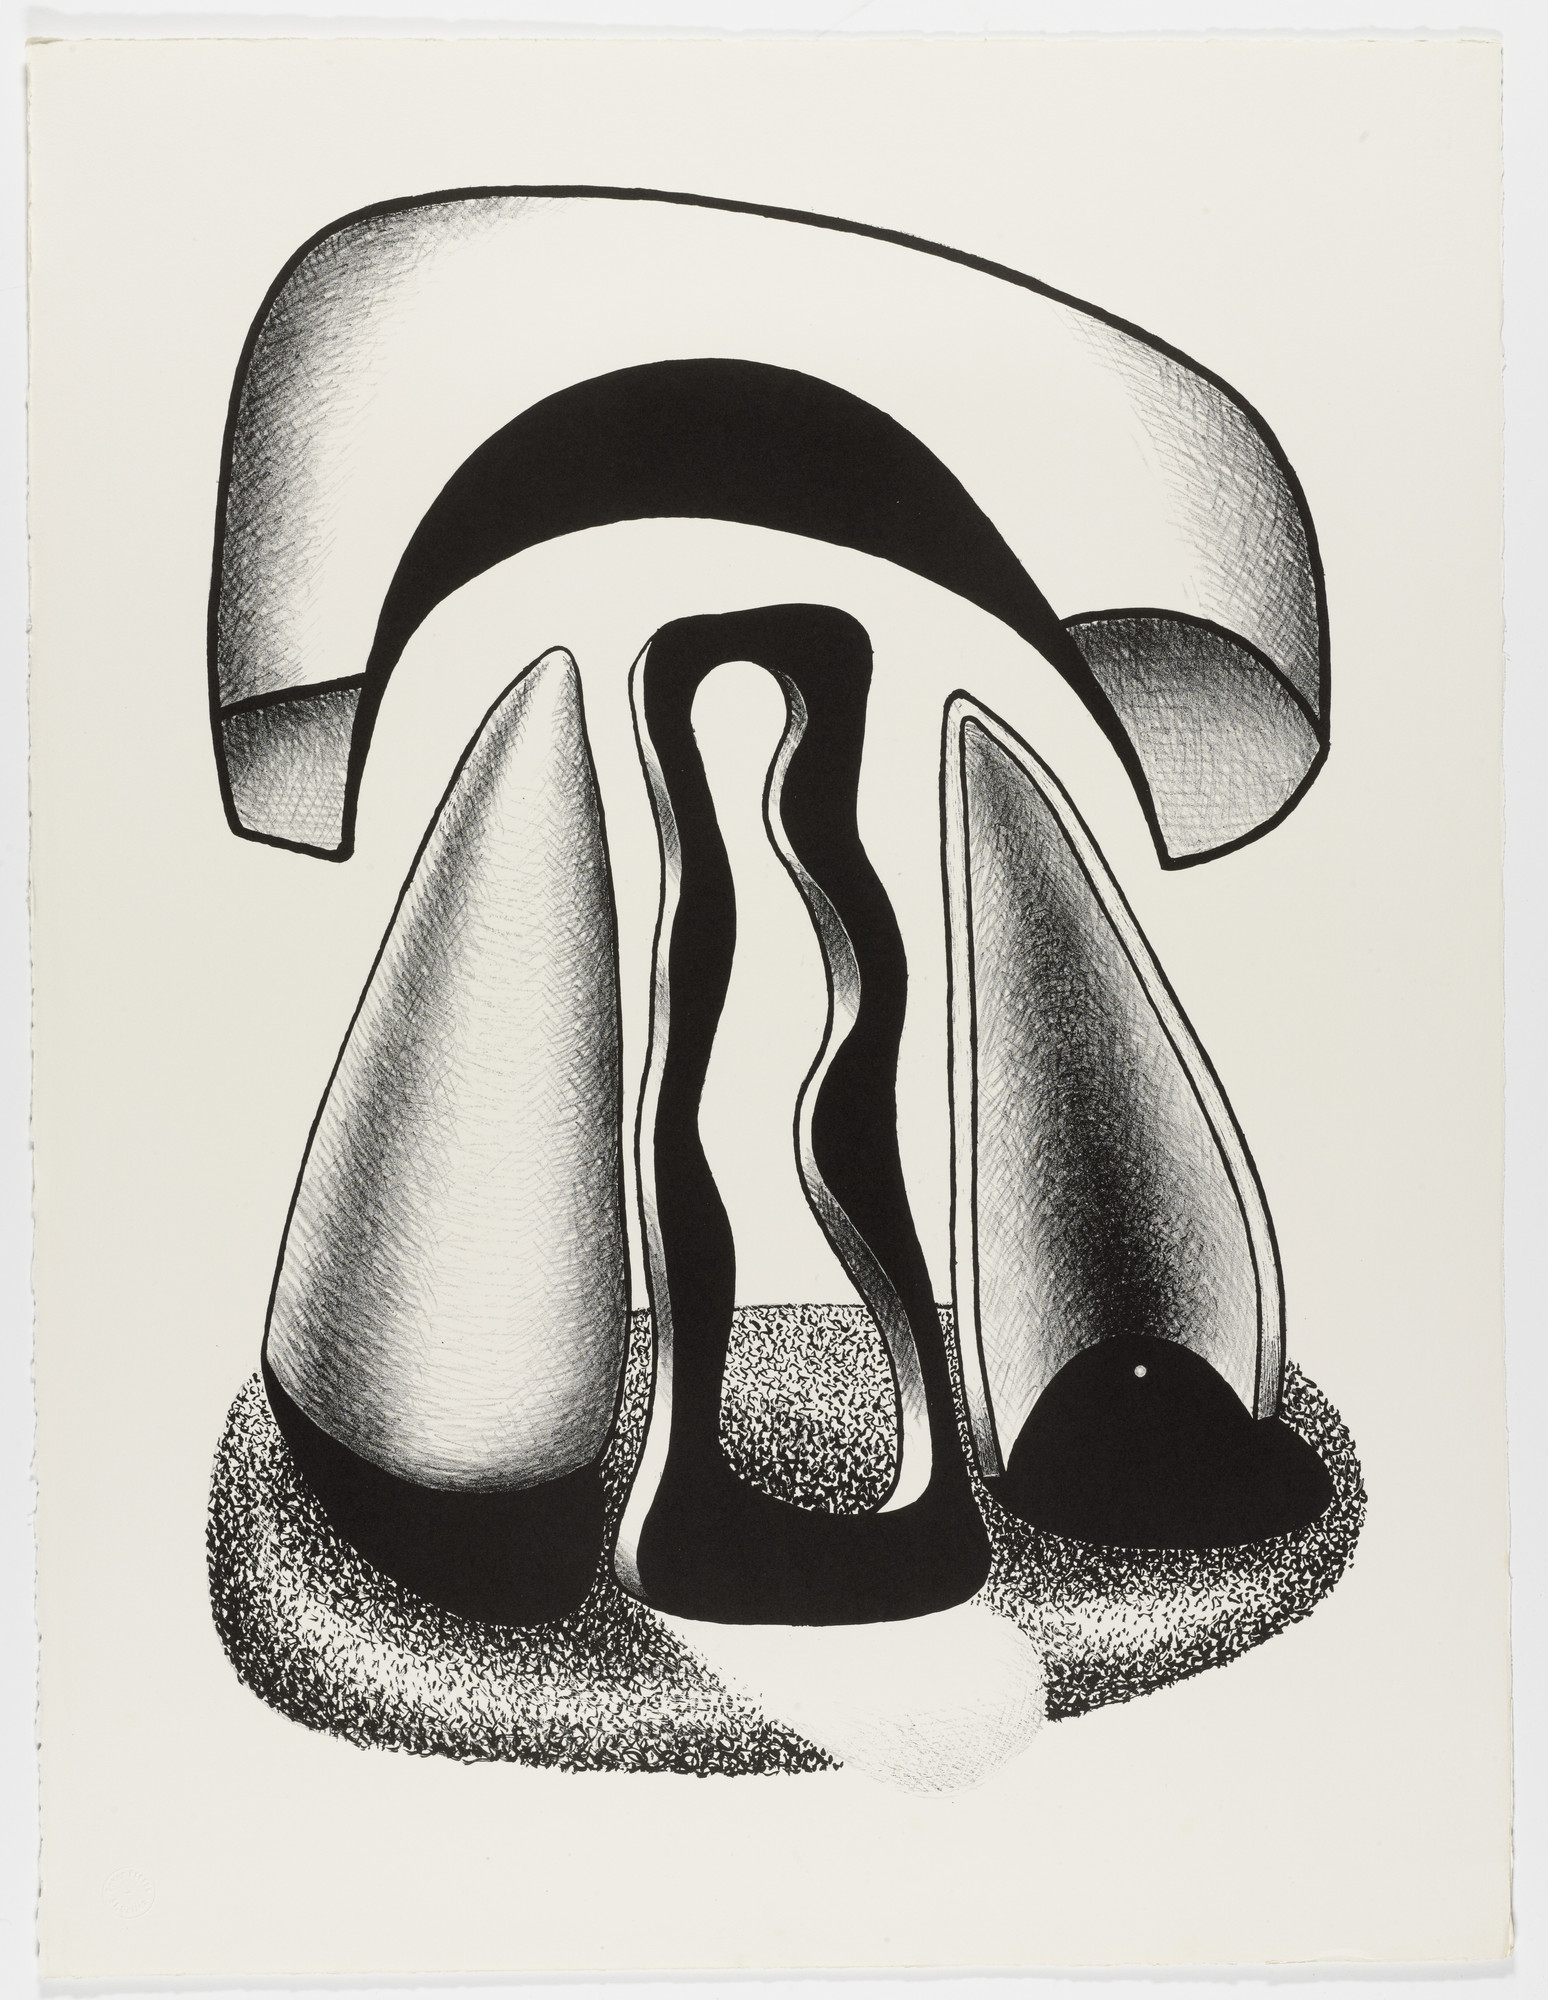 Aleksandr Archipenko. Coronation of Forms (Le couronnement des formes) from the portfolio Living Forms (Les formes vivantes). 1963